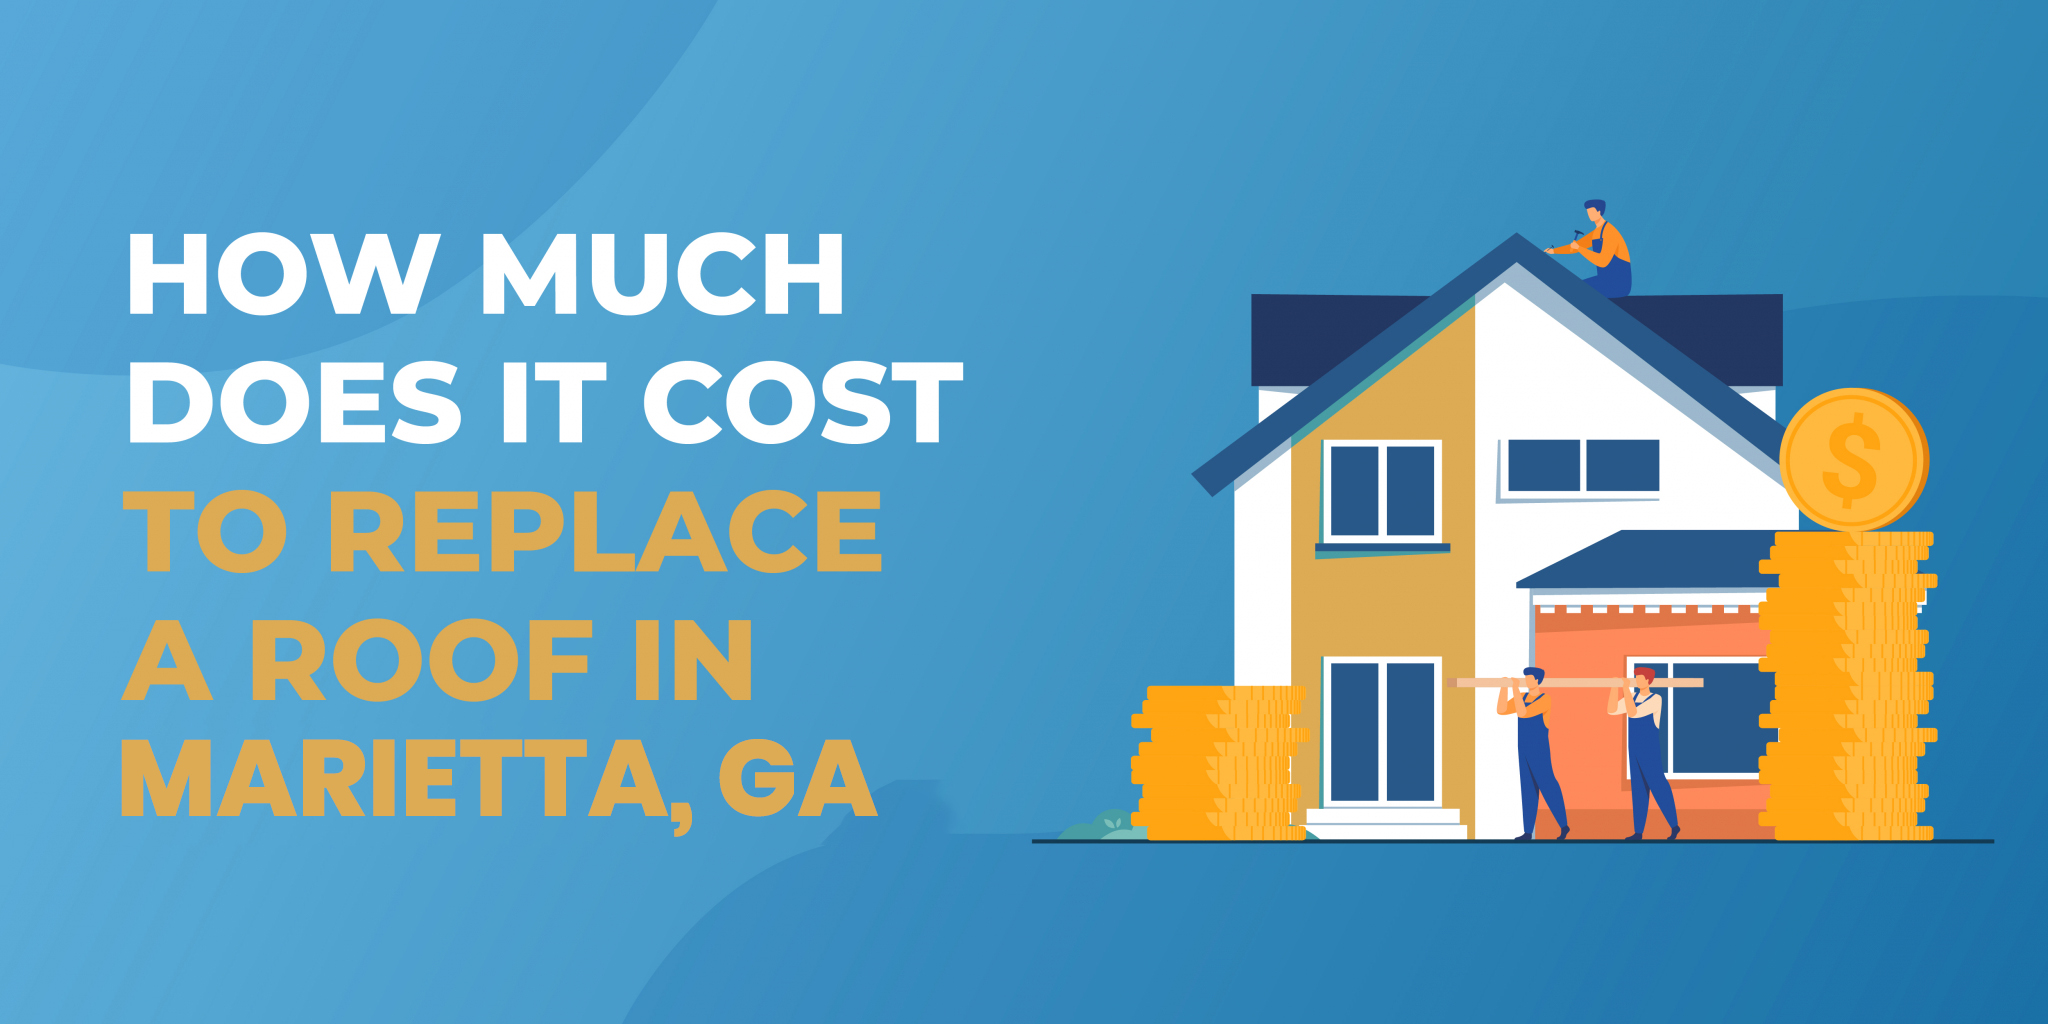 How Much Does It Cost to Replace a Roof in Marietta?